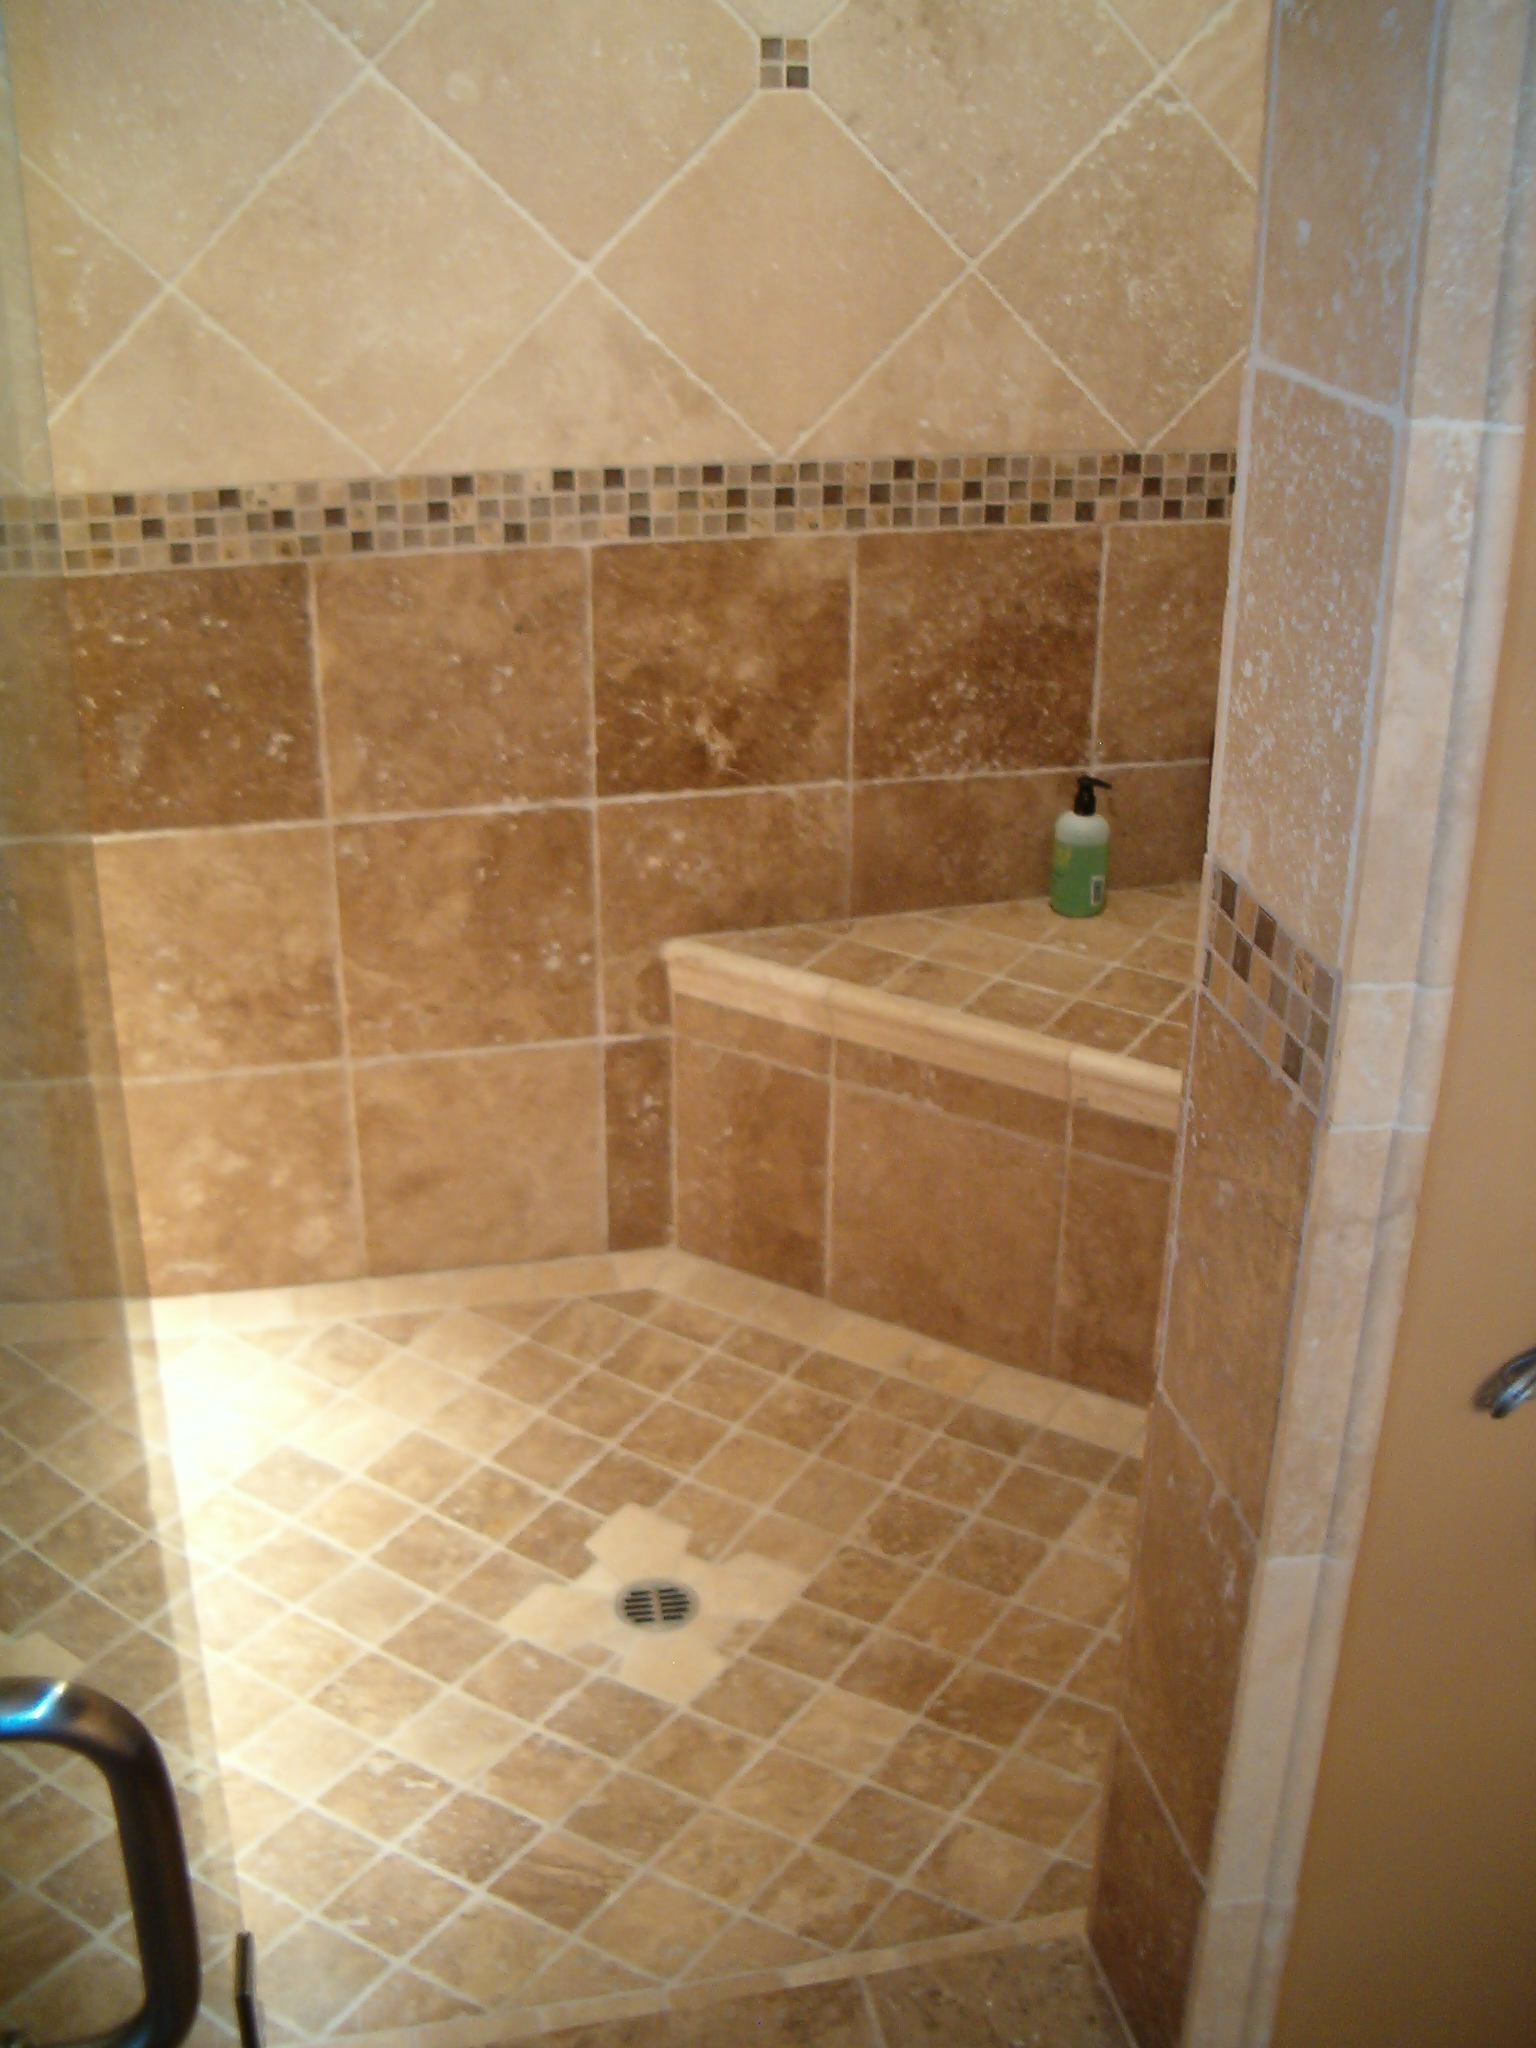 Bathroom Tiled Shower Design Ideas ~ Good ideas how to use ceramic tile for shower walls